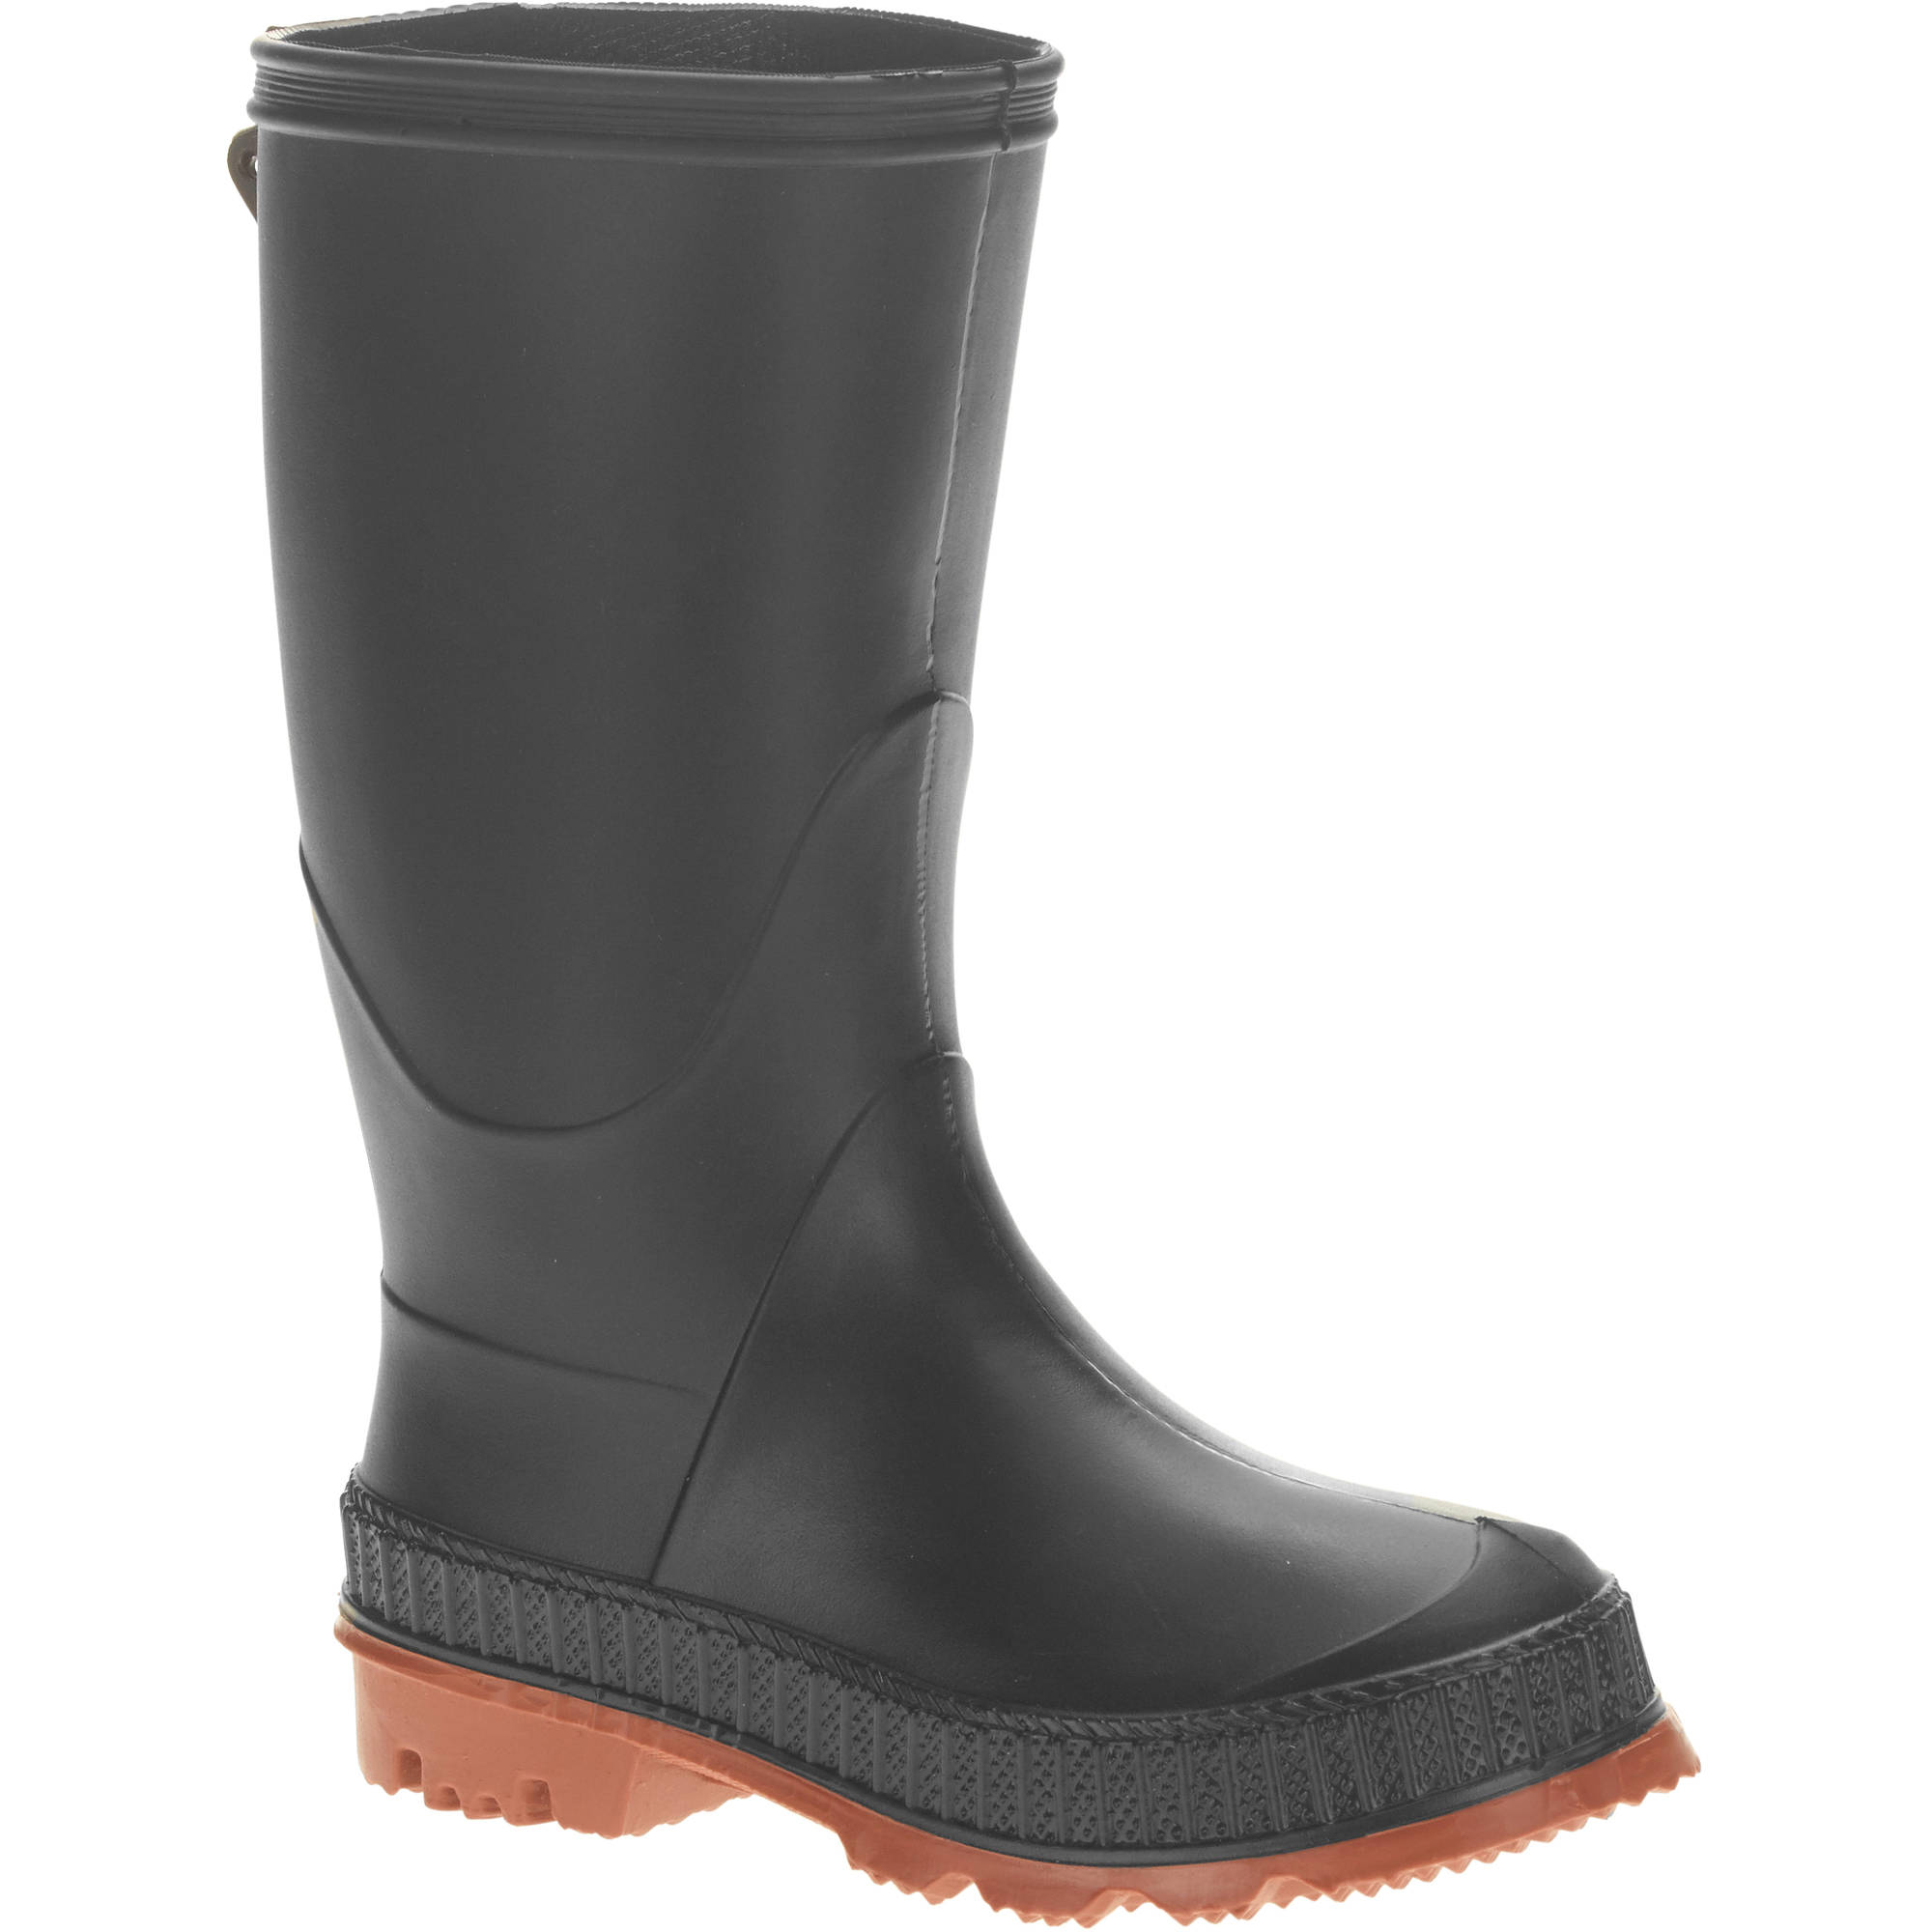 Toddler's Chain-Link Sole Chore Rain Boot